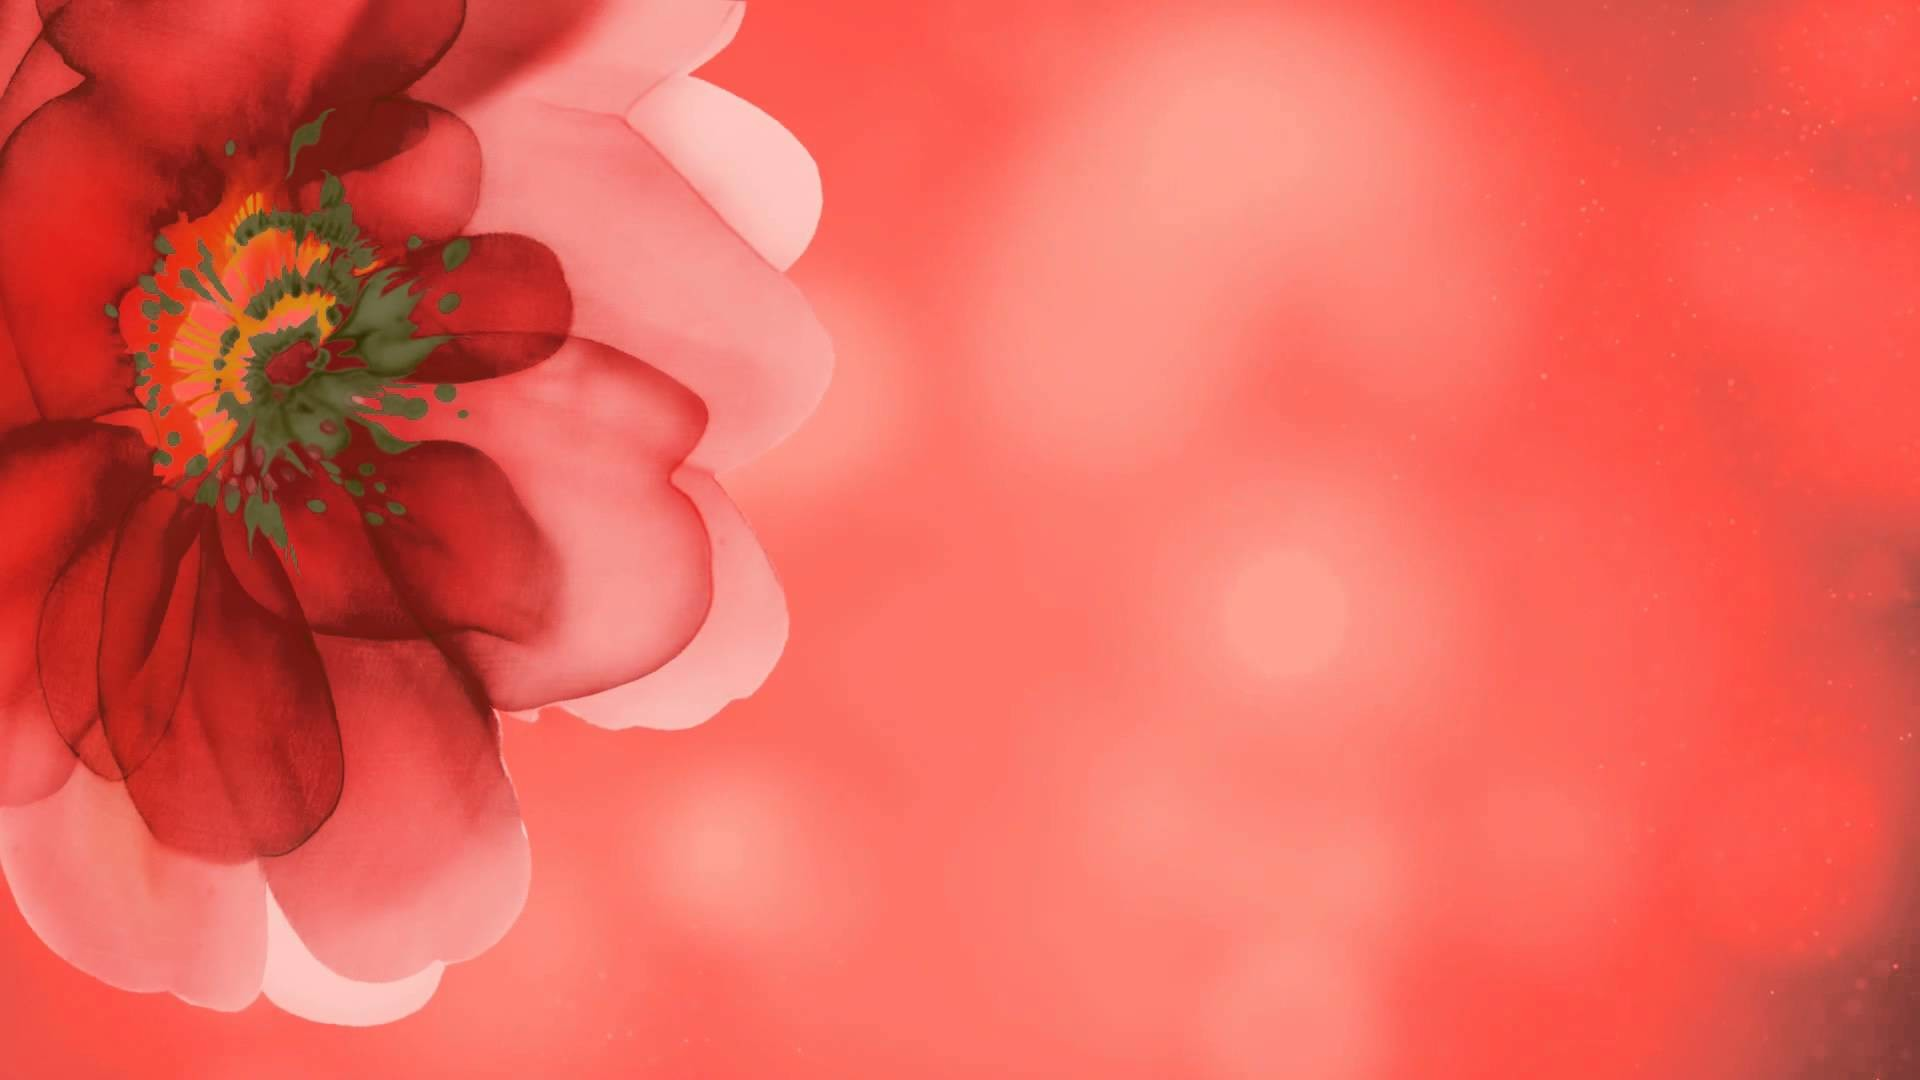 Red Flower Background